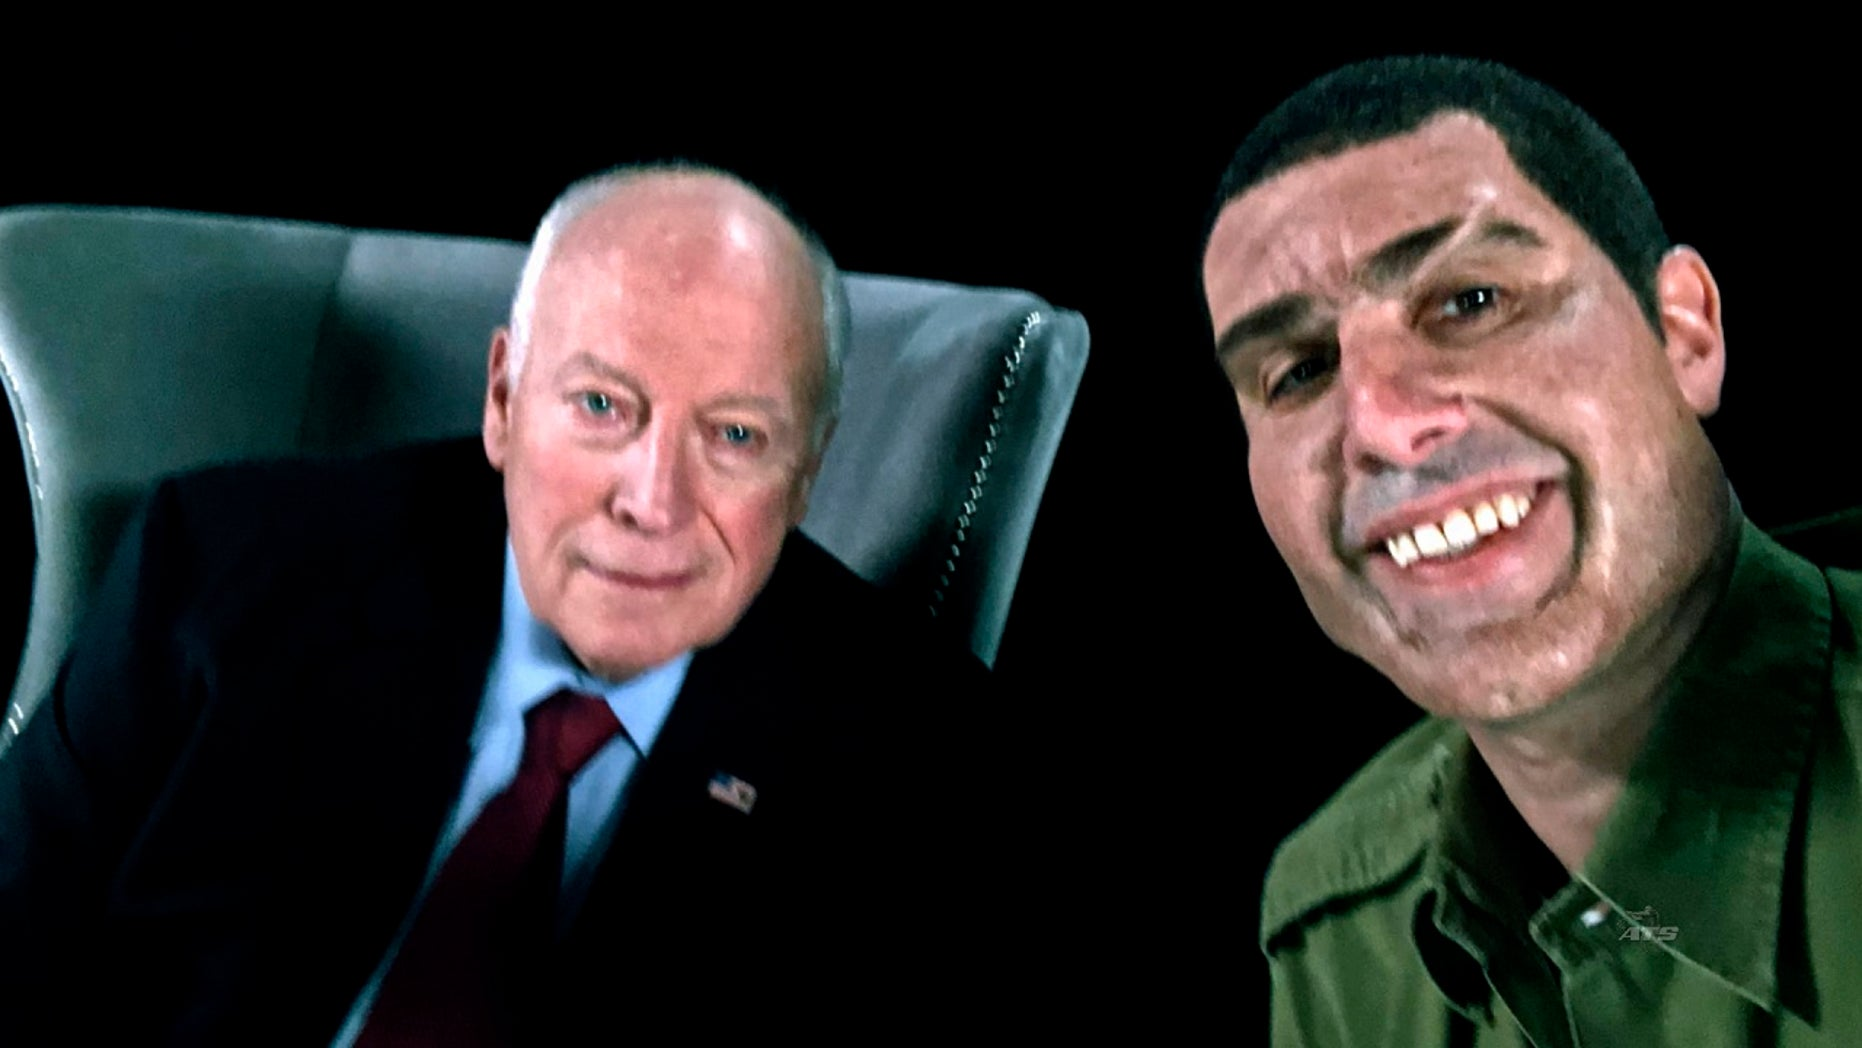 """Baron Cohen's previous work includes the 2006 film """"Borat"""" and 2012's """"The Dictator."""" Here the actor appears with former Vice President Dick Cheney, portraying retired Israeli Col. Erran Morad in """"Who Is America?"""" (Showtime via AP)"""